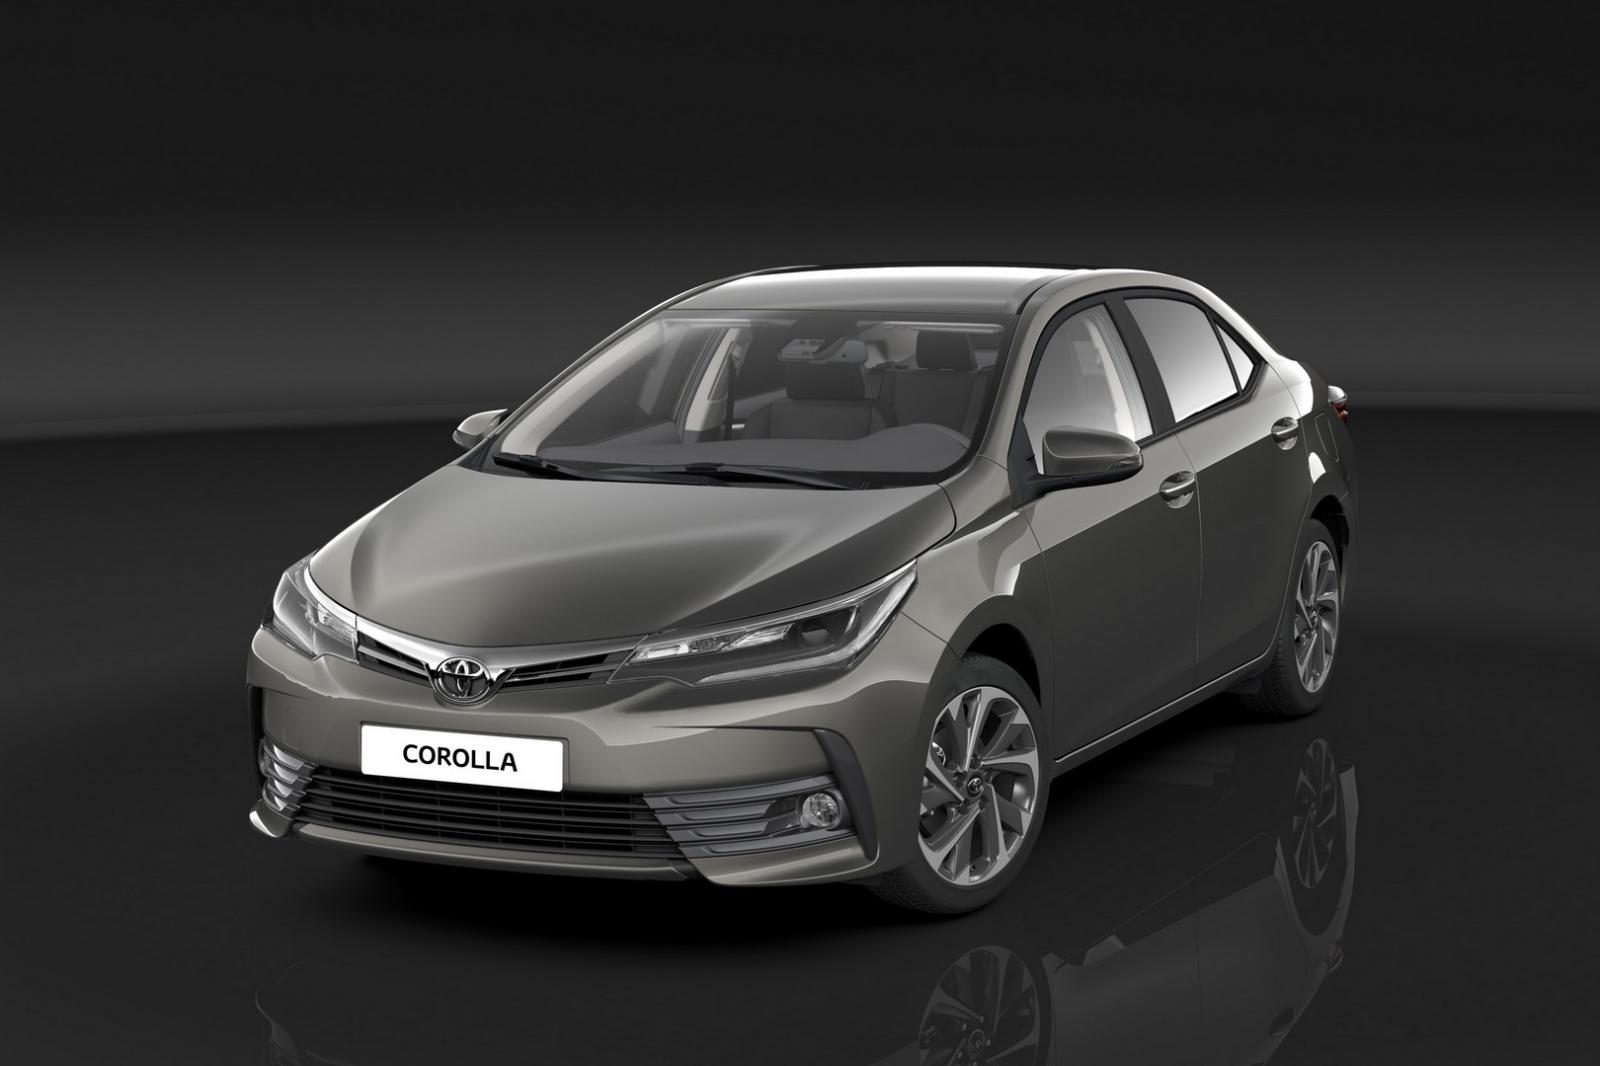 2016 toyota corolla facelift for european market revealed autoevolution. Black Bedroom Furniture Sets. Home Design Ideas